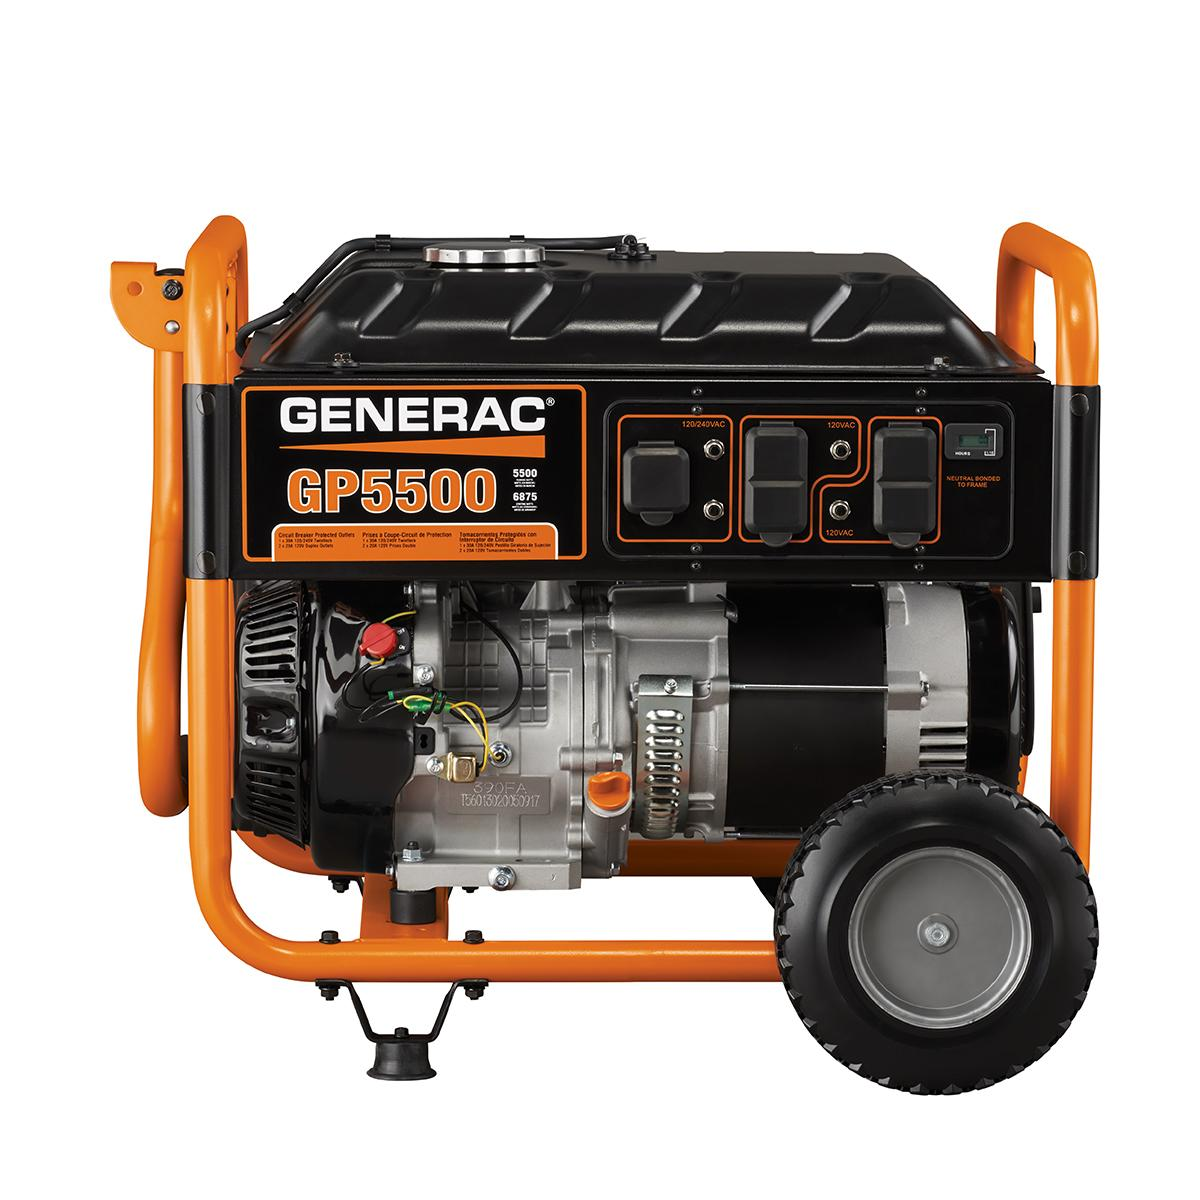 Wiring Diagram Starter 6500gp Generac Diagrams Generator Auto Start Amazon Com 5939 Gp5500 5500 Running Watts 6875 Automatic Transfer Switches Portable